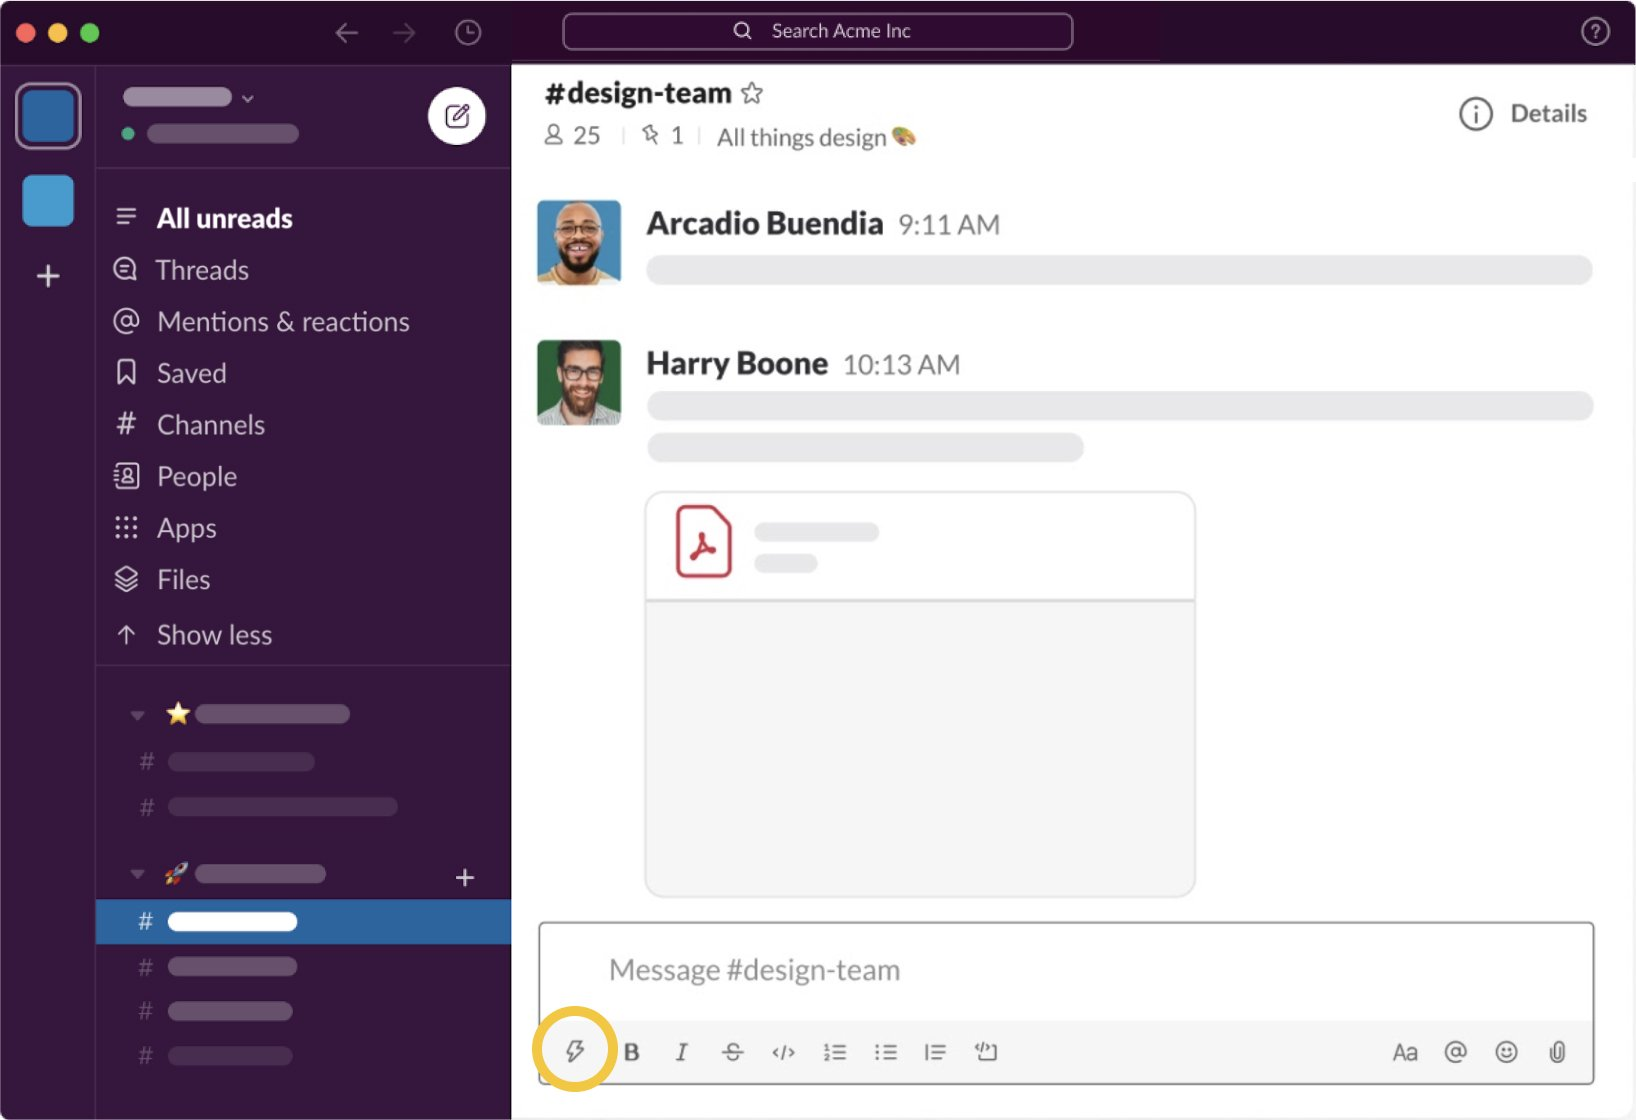 Screenshot of the Slack interface showing a design team channel